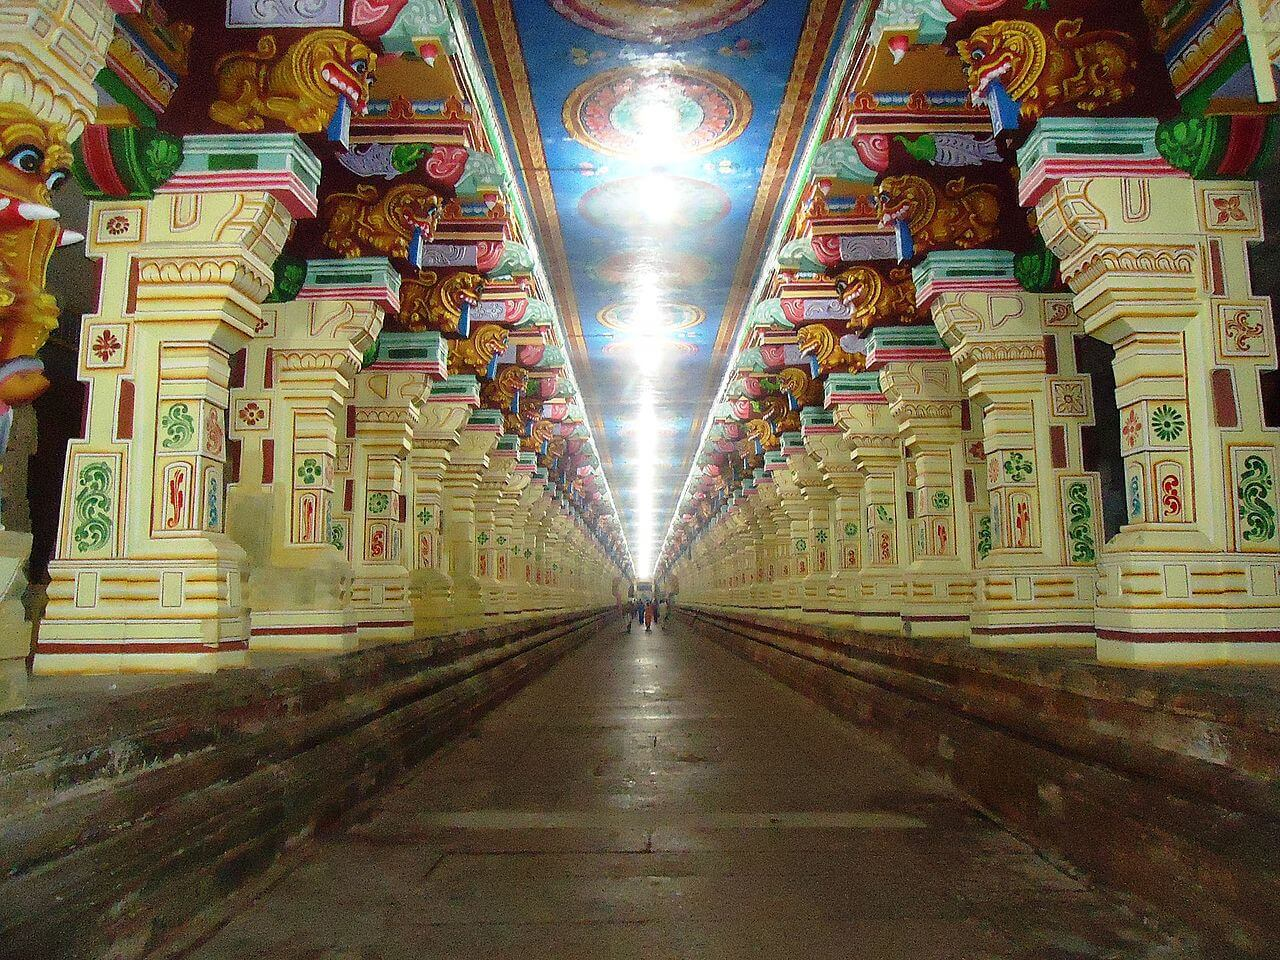 inside a temple in rameshwaram